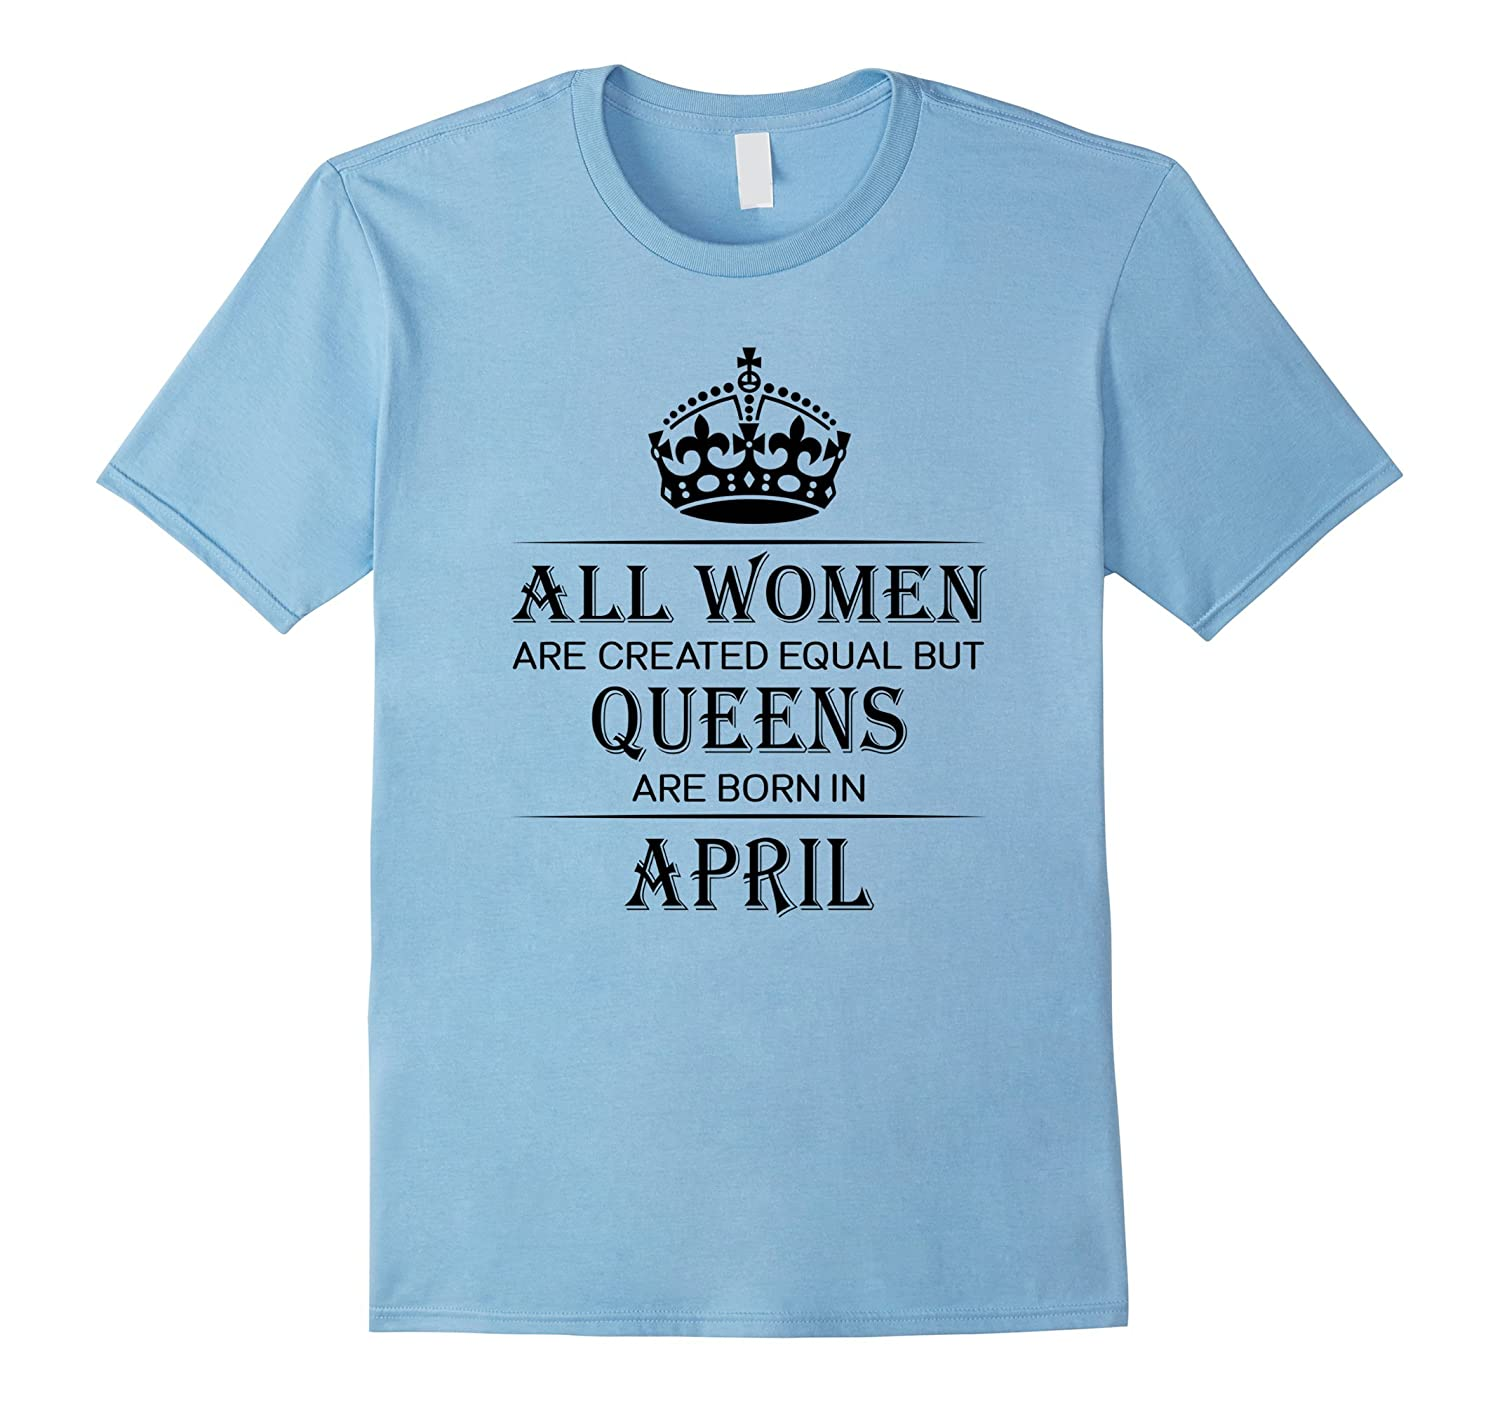 All Women Are Created Equal But Queens Are Born In April-CL